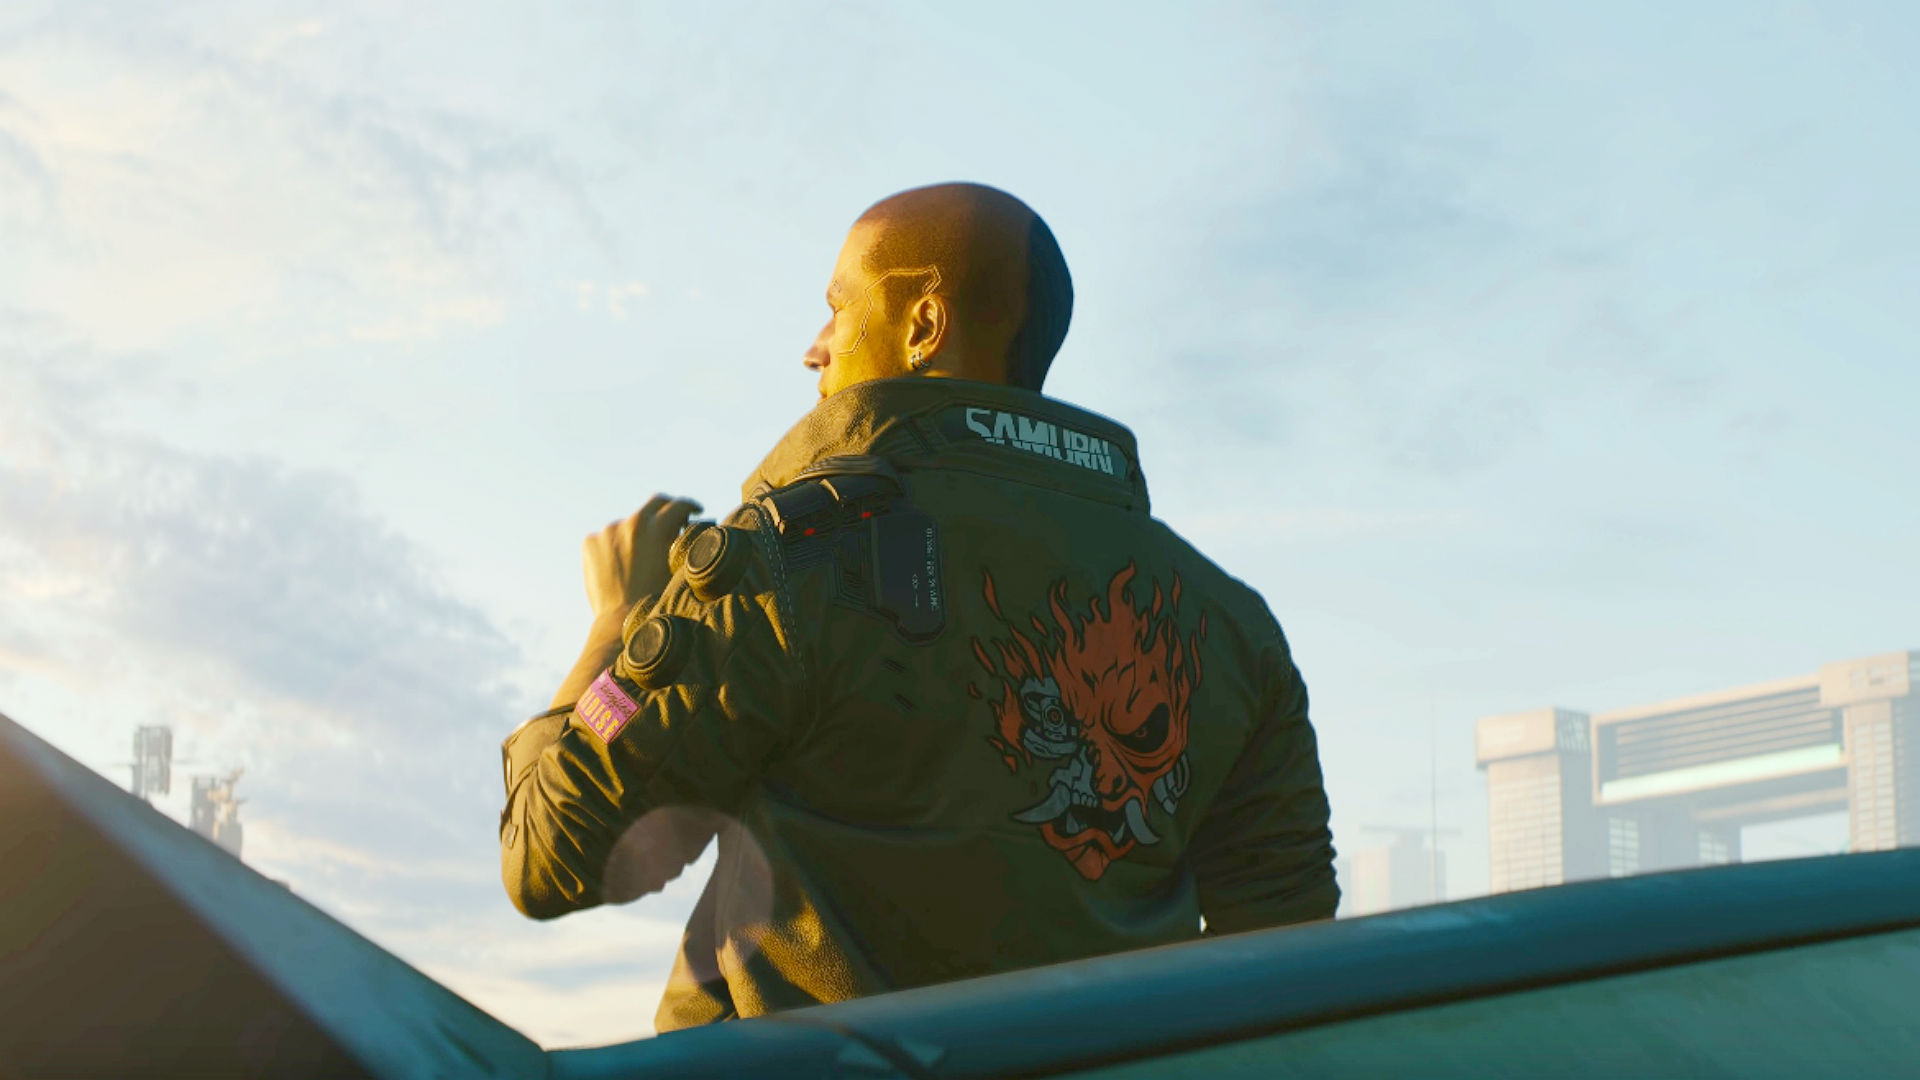 We'll get a Cyberpunk 2077 release date at E3, according to